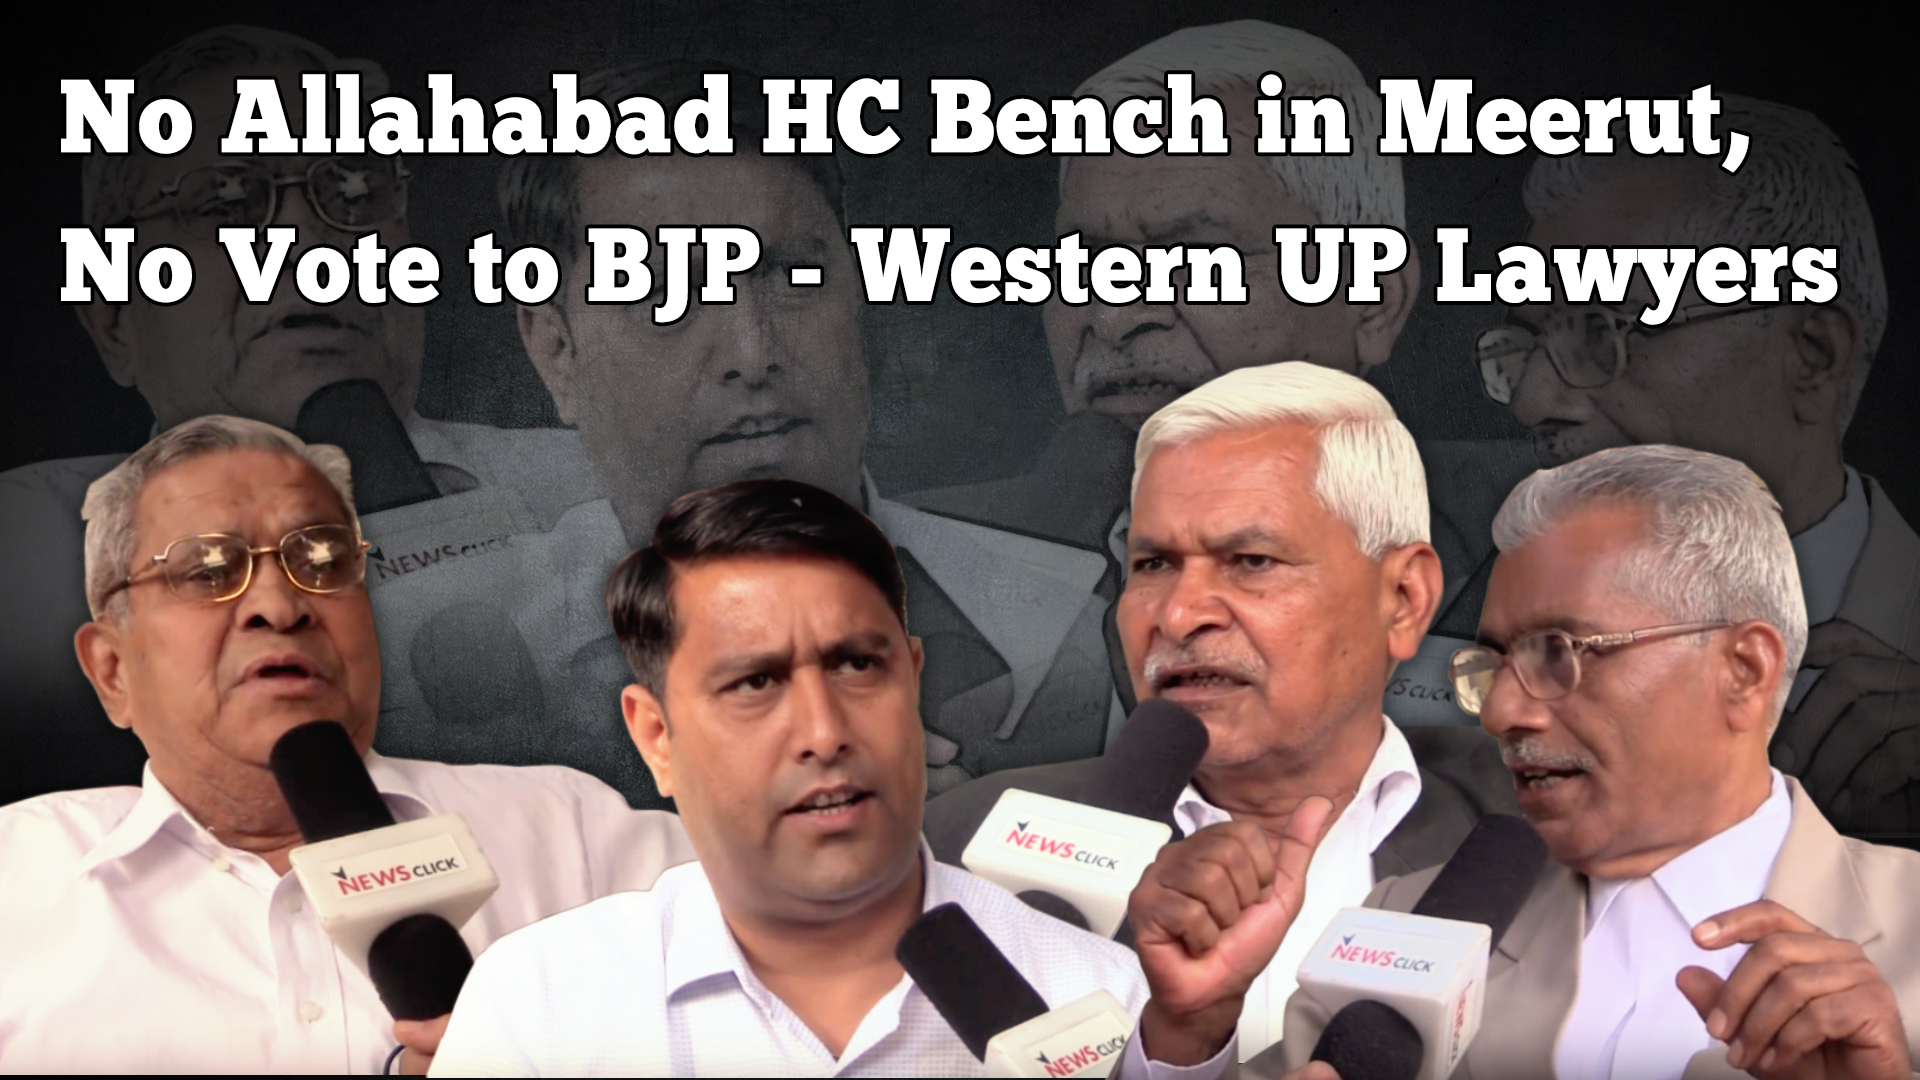 Elections 2019: 'No Allahabad HC Bench in Meerut, No Vote to BJP'